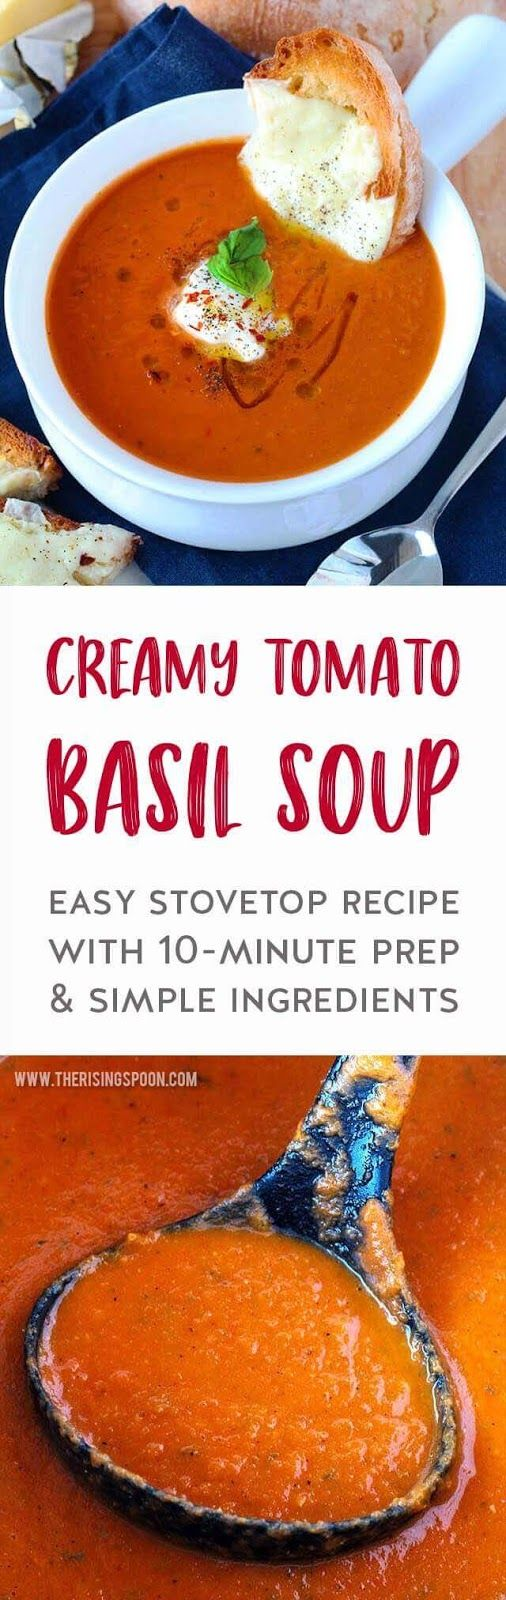 An easy recipe for Creamy Tomato Basil Soup that's healthyrecipes homemade, and only takes about 40 minutes to fix on the stove with just 10 minutes of prep. It's made with simple ingredients like canned tomatoes, fresh basil, and carrots, which results in a light, yet cozy tomatosoup soup that you'll want to make on repeat all year long. {gluten-free & grain-free with dairy-free options} #soup #souprecipes #tomatosoup #easyrecipe #healthyrecipes